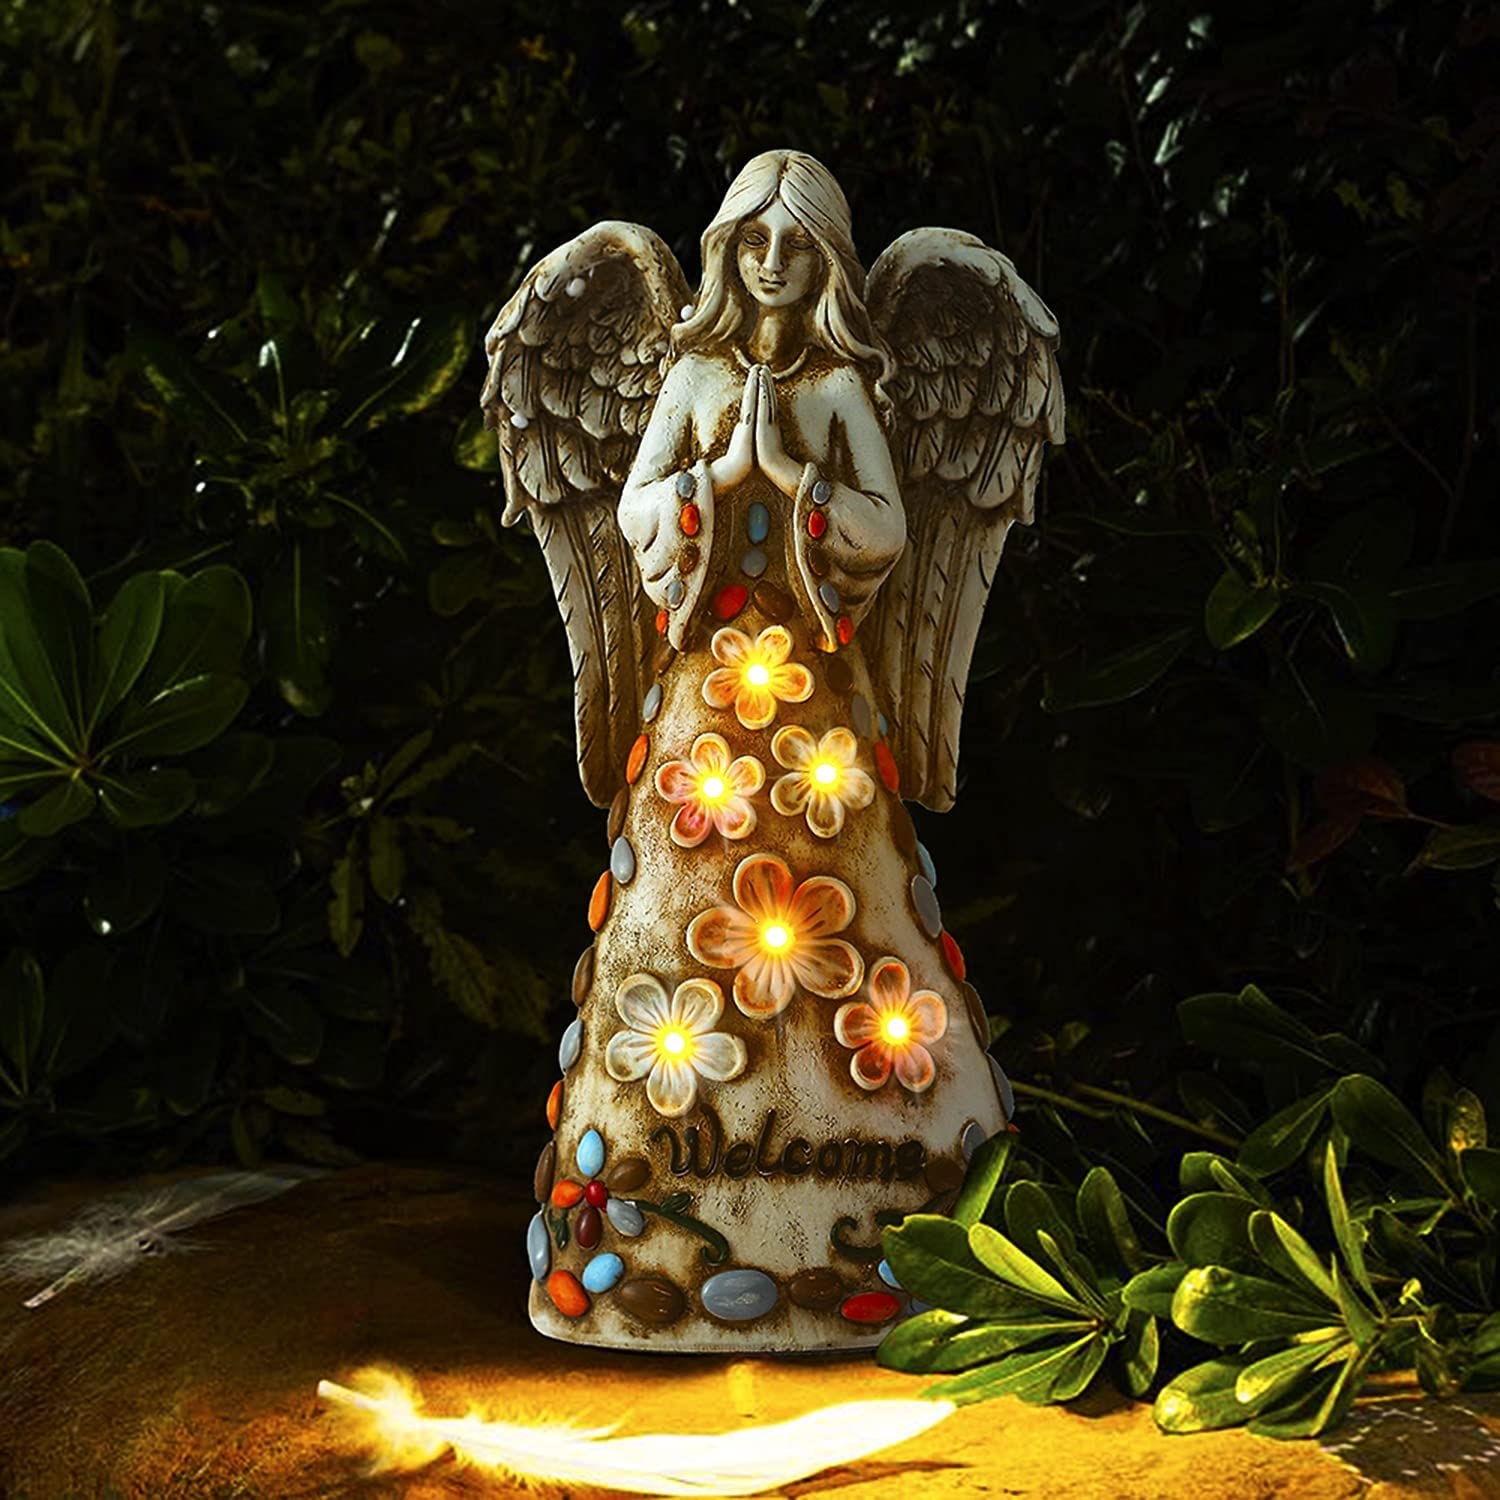 Angel Garden Statue Outdoor Decor - Solar Figurine Lights Yard Art Angel Solar Stake Lights with 6 Warm LEDs for Patio, Lawn, Yard, Porch Decoration, Memorial Gifts (Warm)